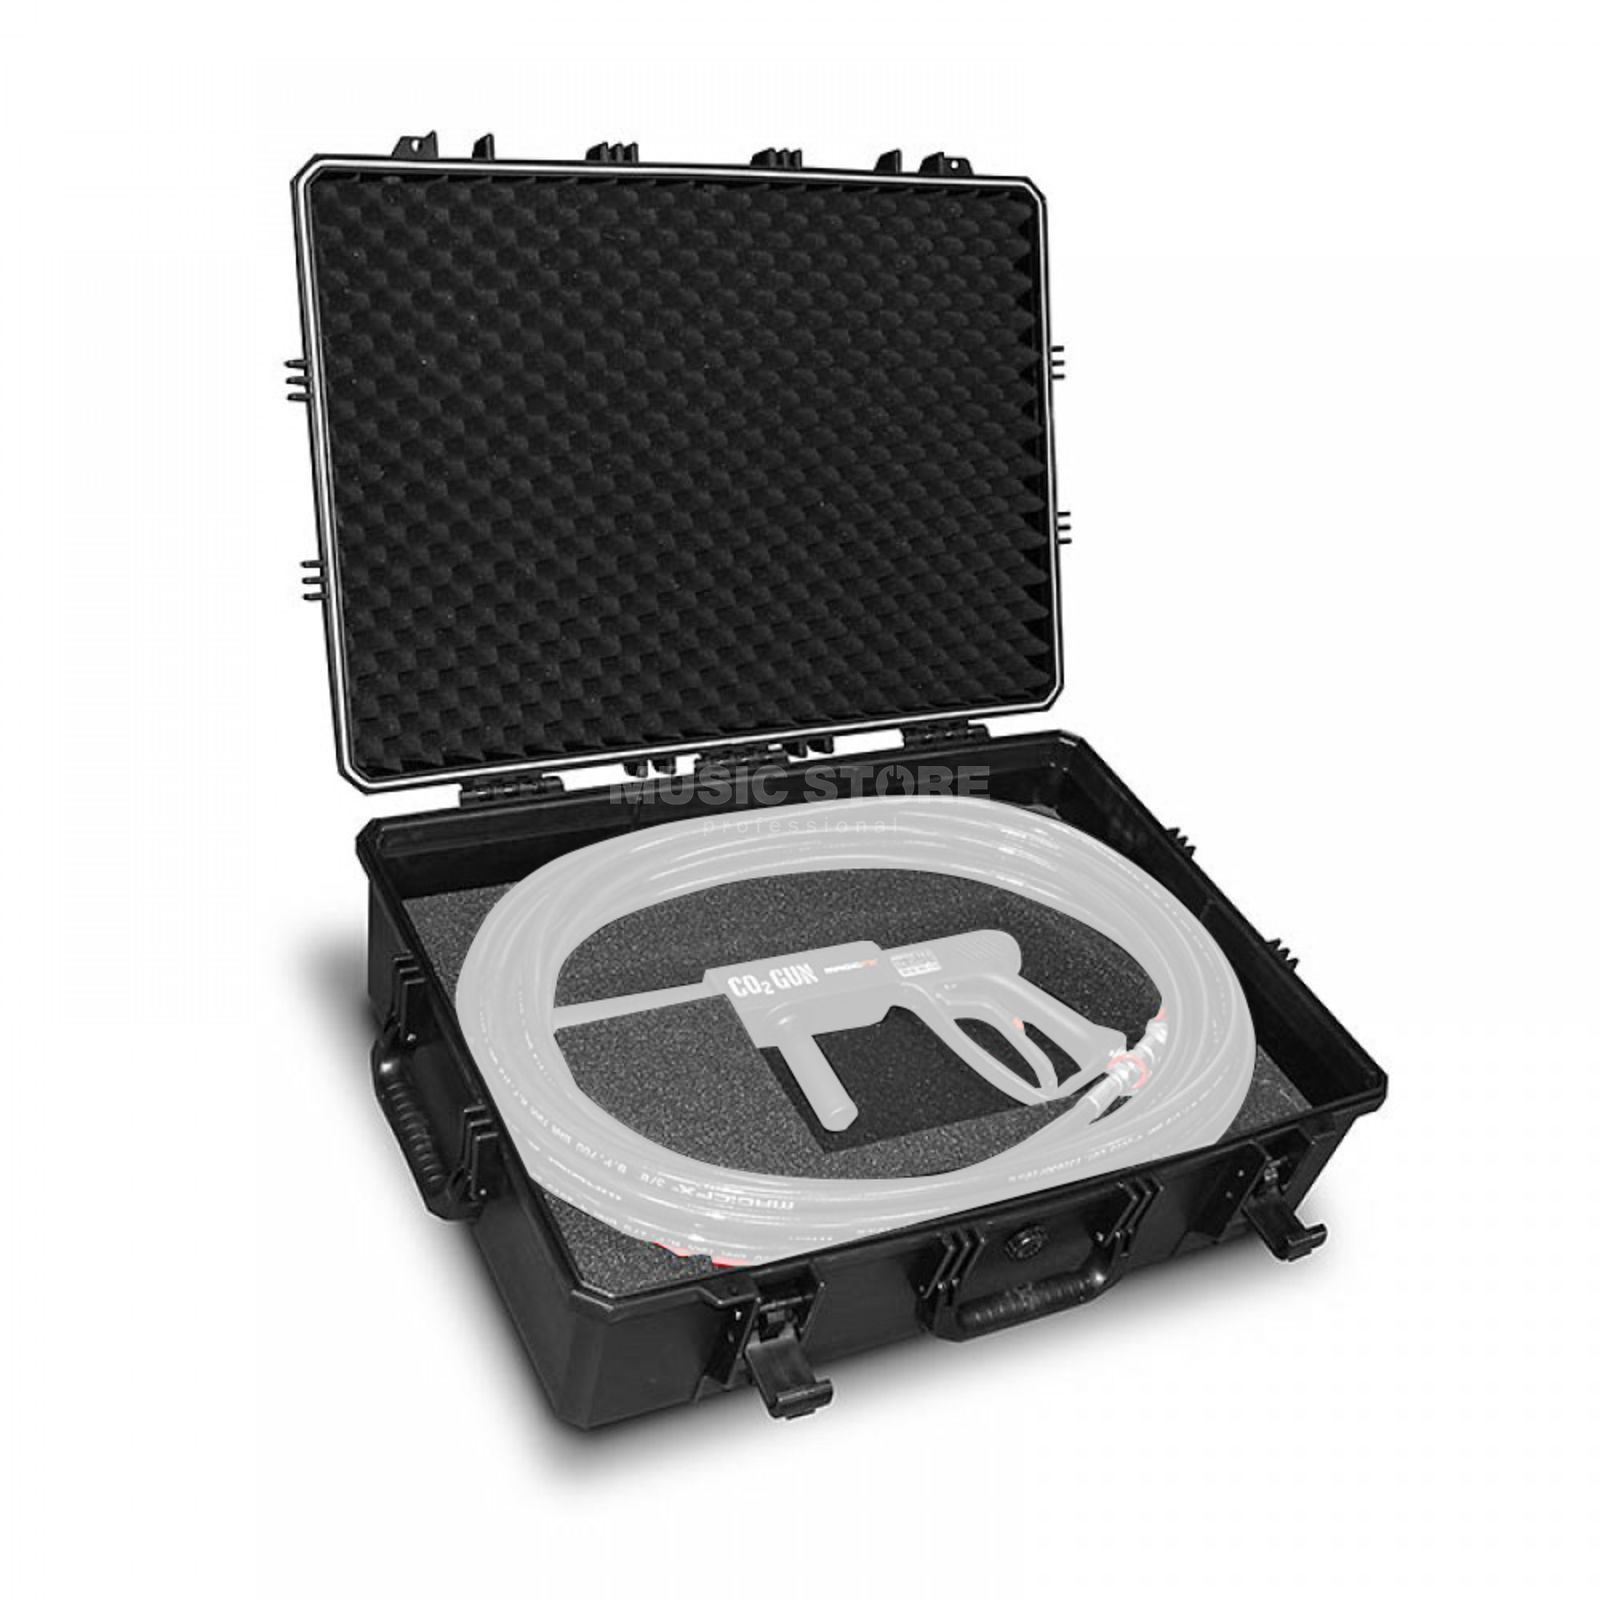 MagicFX Case for CO2 Gun Product Image